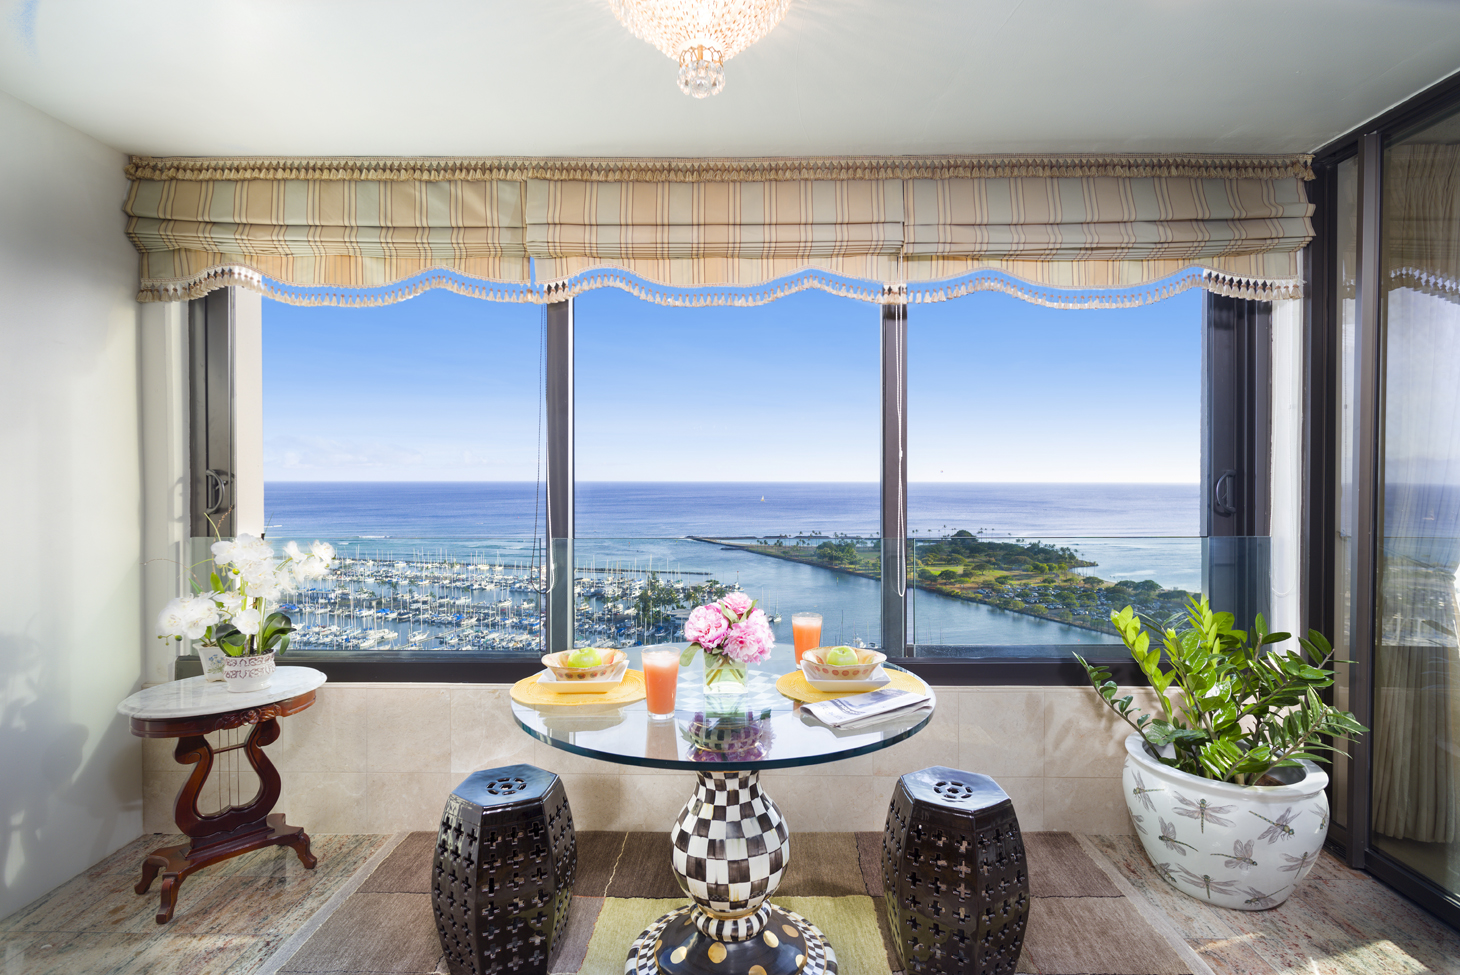 Single Family Home for Sale at Spectacular Viewpoints Ocean/Yacht Harbor Home 1600 Ala Moana Blvd #3204 Honolulu, Hawaii 96815 United States